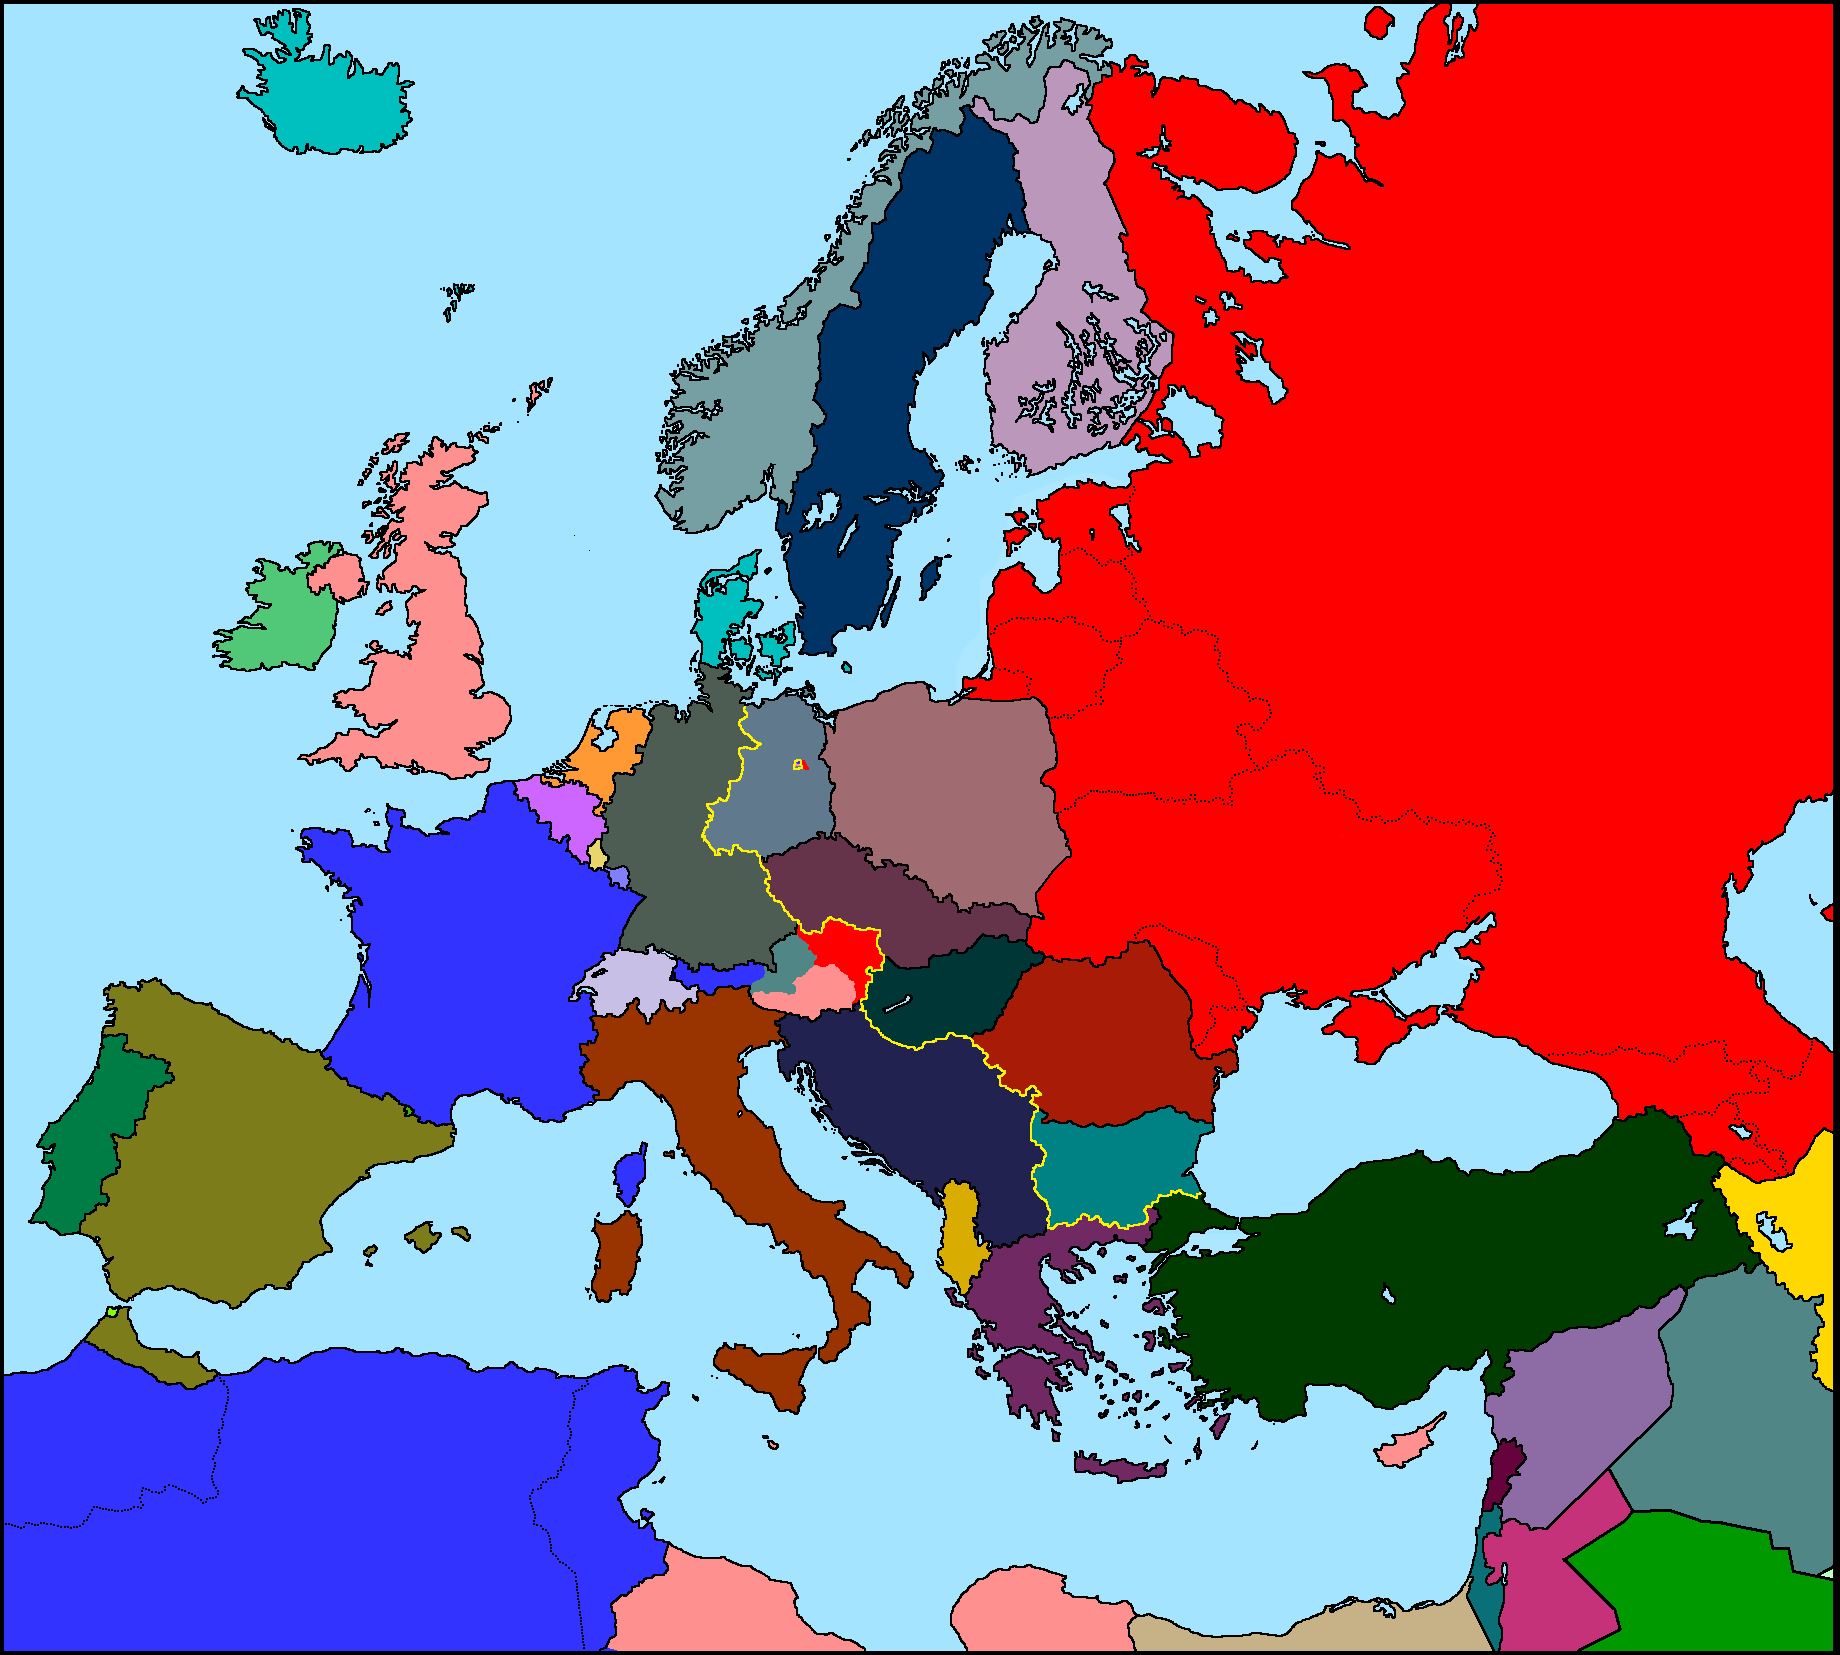 Map Of Europe 1950 Map of Europe 1950 v2 by xGeograd on DeviantArt